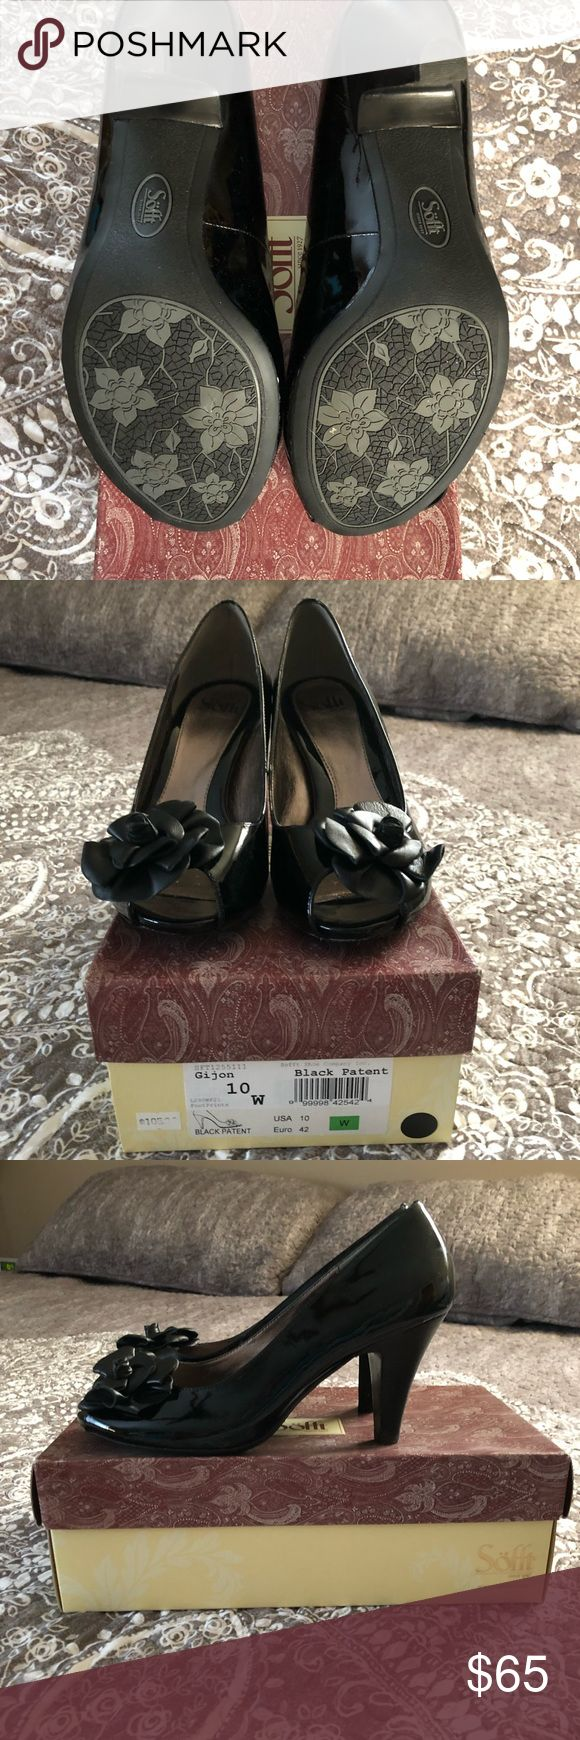 Black Patent leather pumps, size 10W Black Patent leather pumps, size 10W Brand: Sofft, Store purchase from: Footprints (Connecticut) Worn once for one hour Retail: $105.00 Sofft Shoes Heels